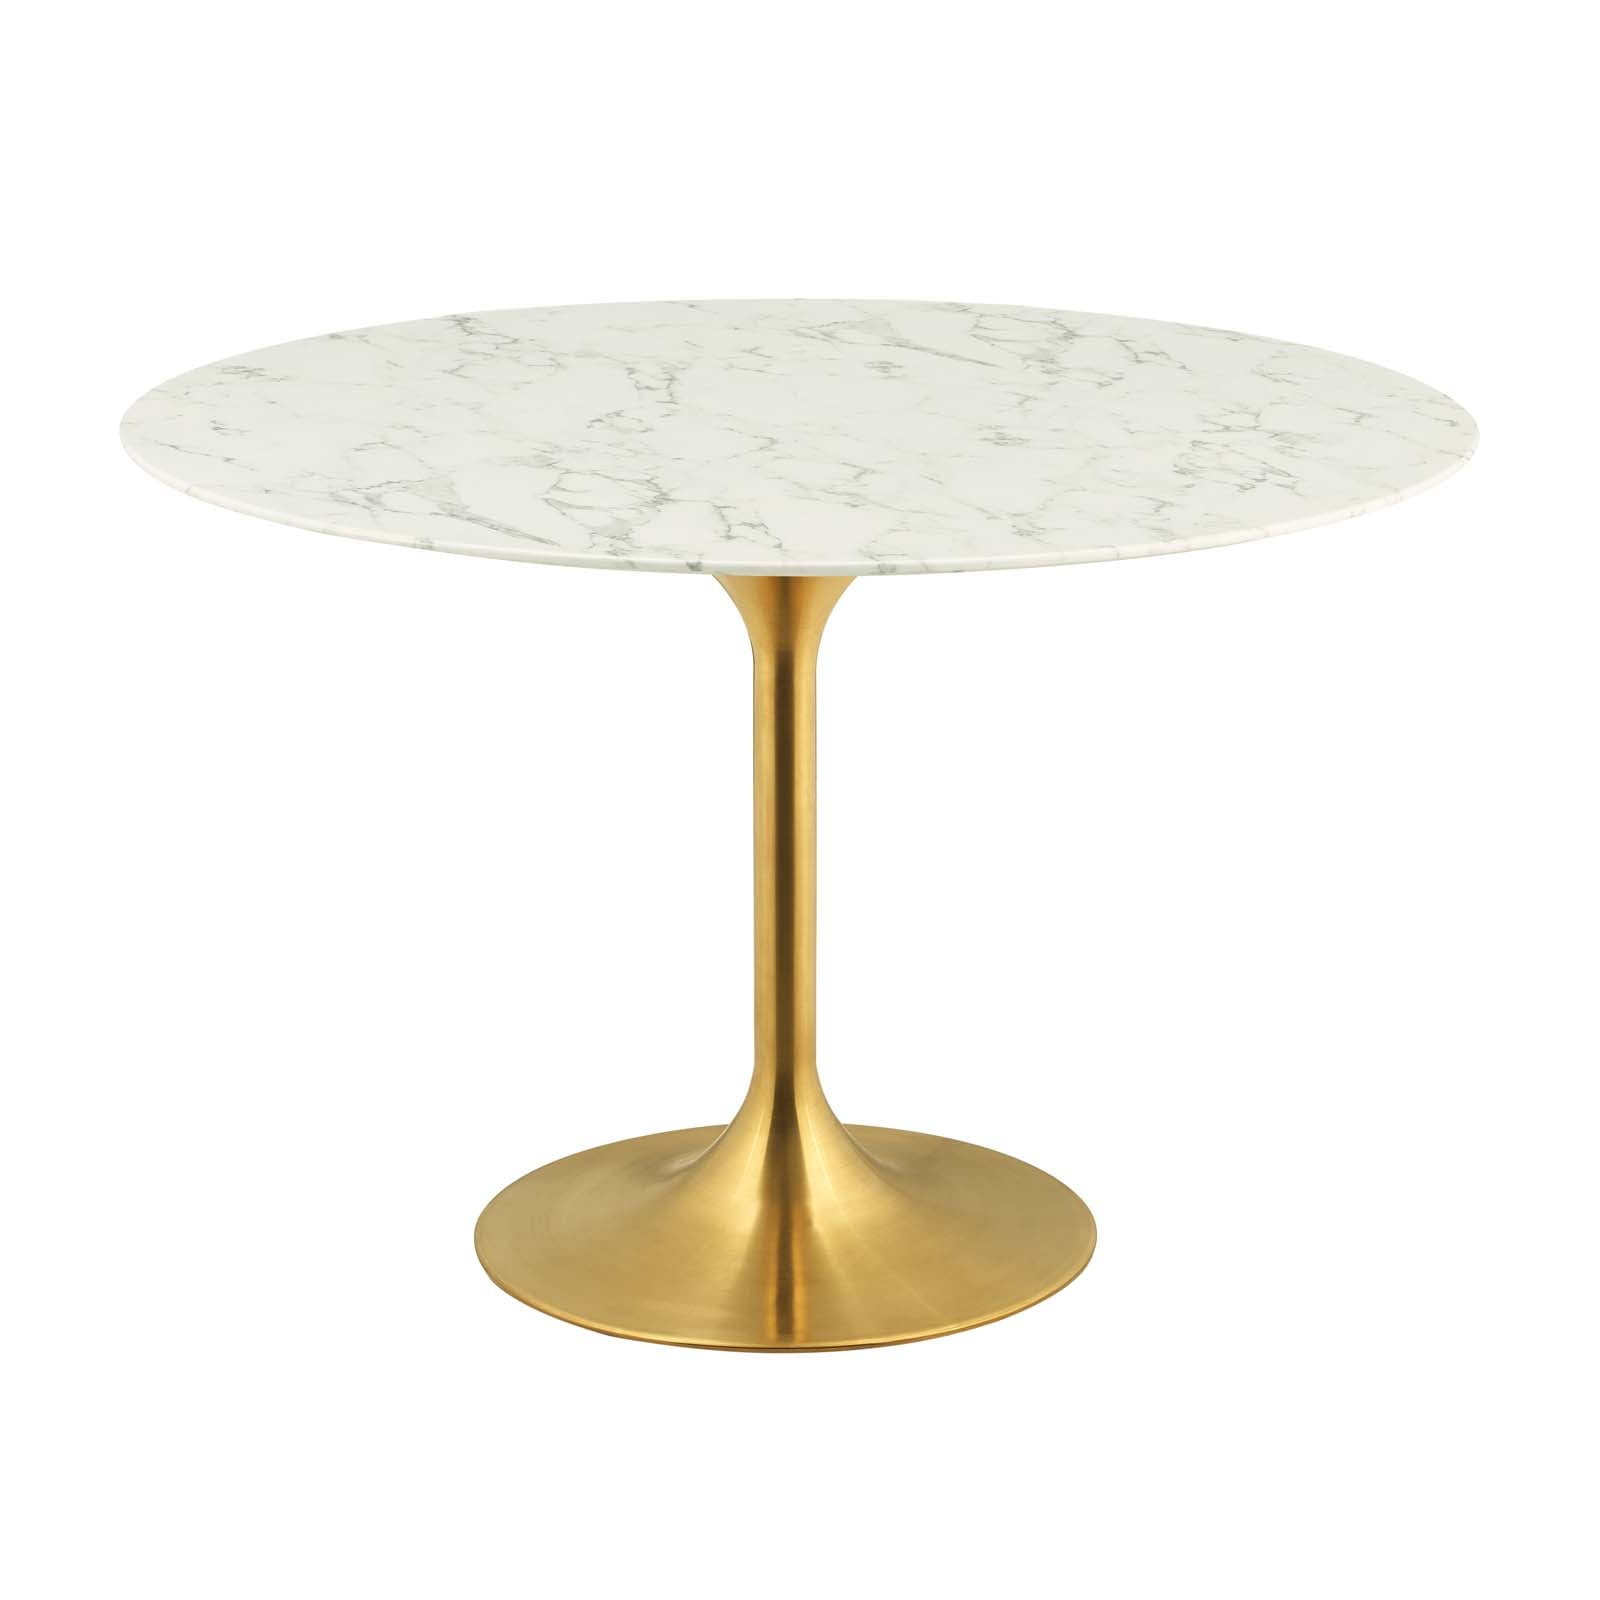 "Modway Lippa 47"" Round Artificial Marble Dining Table in Gold White"